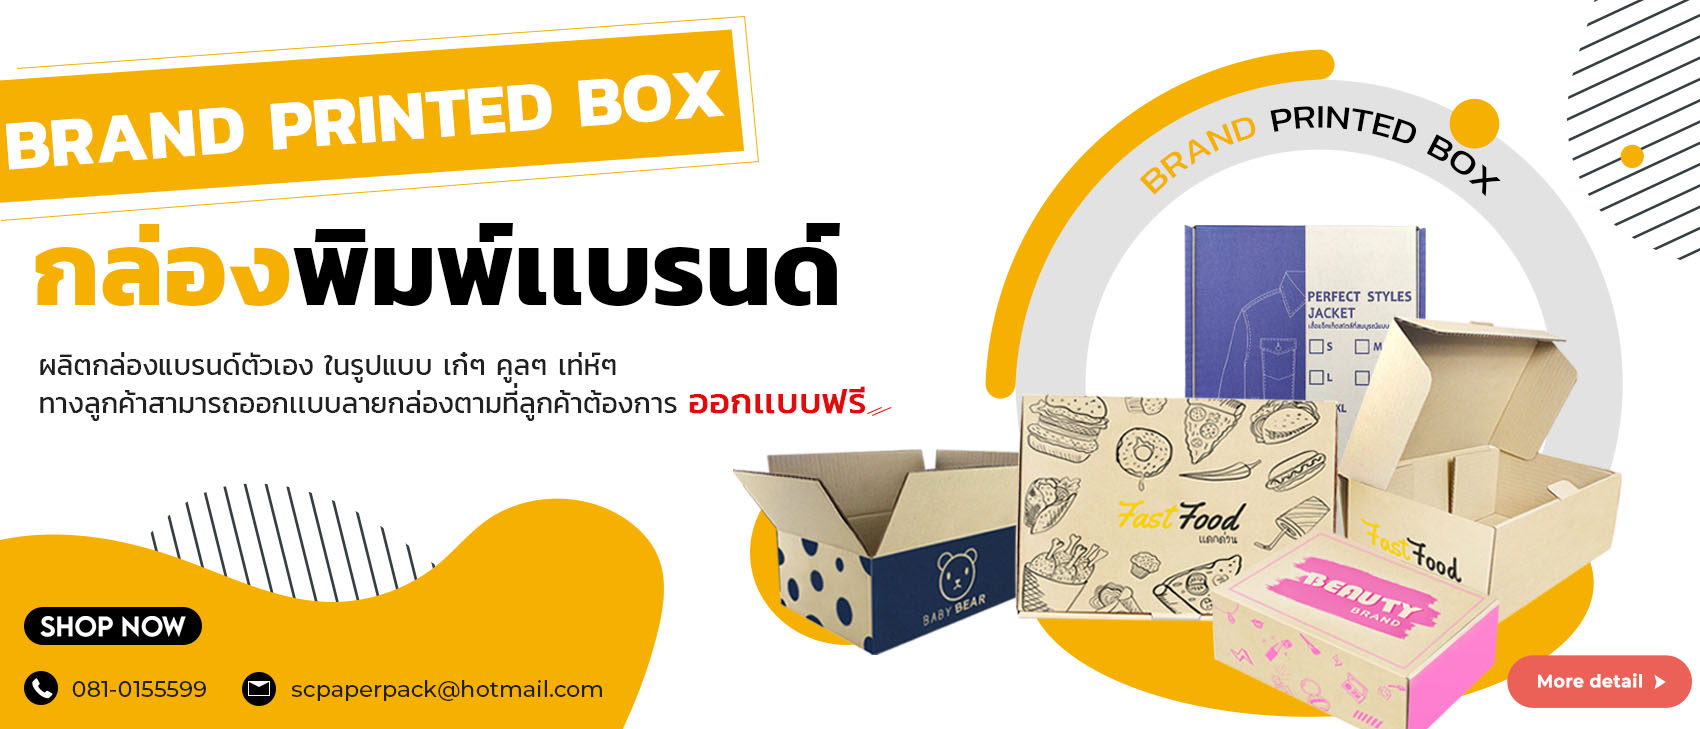 Made to order box